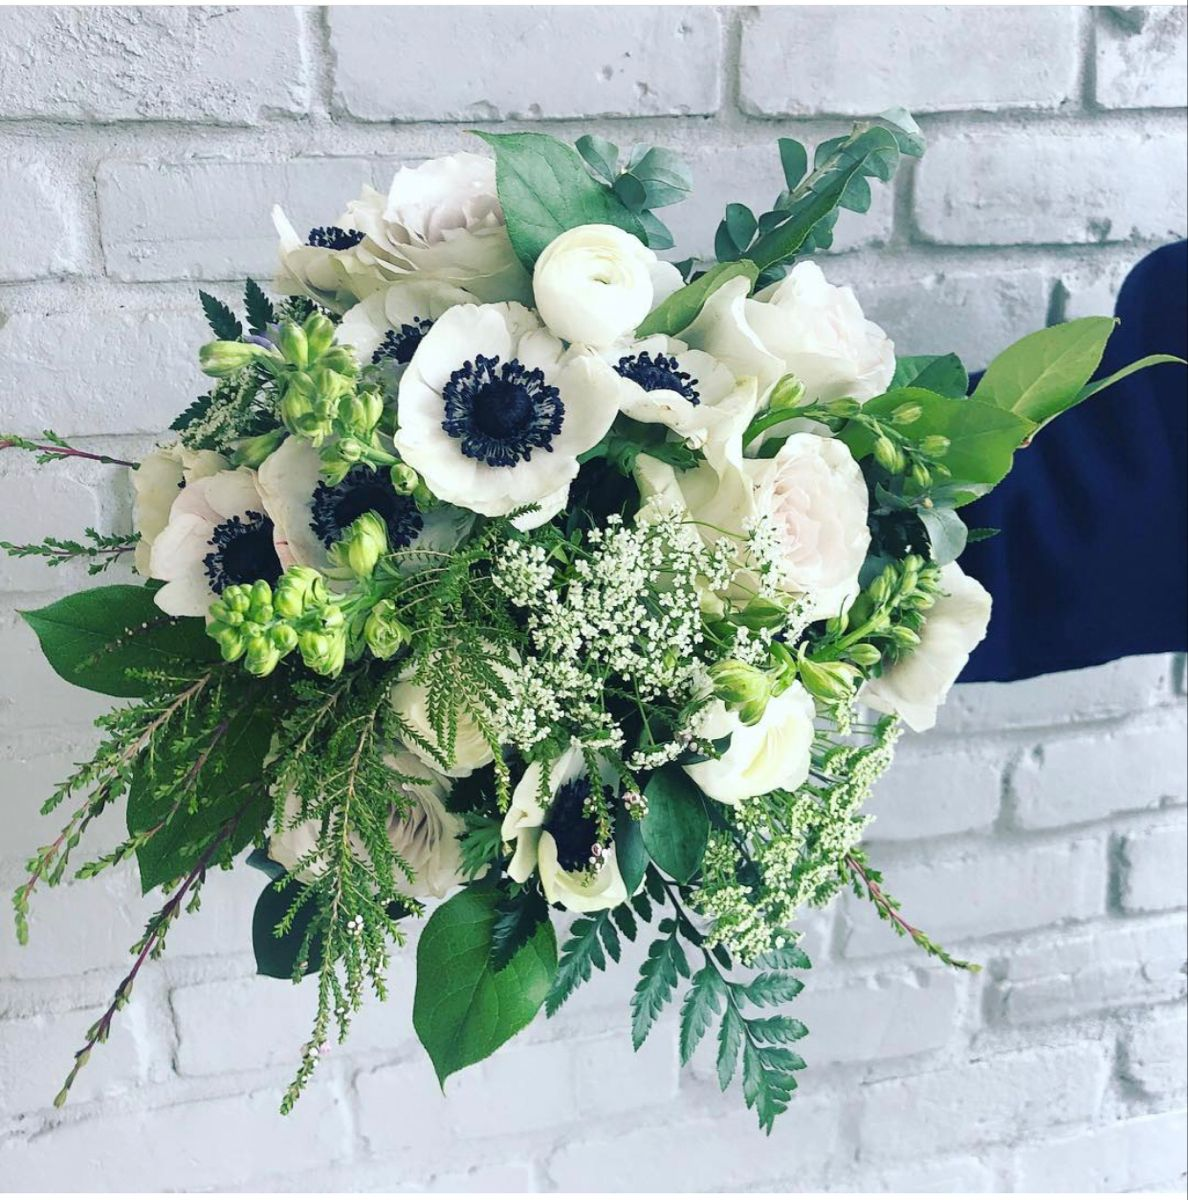 Anemone Flower In 2020 Anemone Flower White Anemone Flower Flowers For Sale